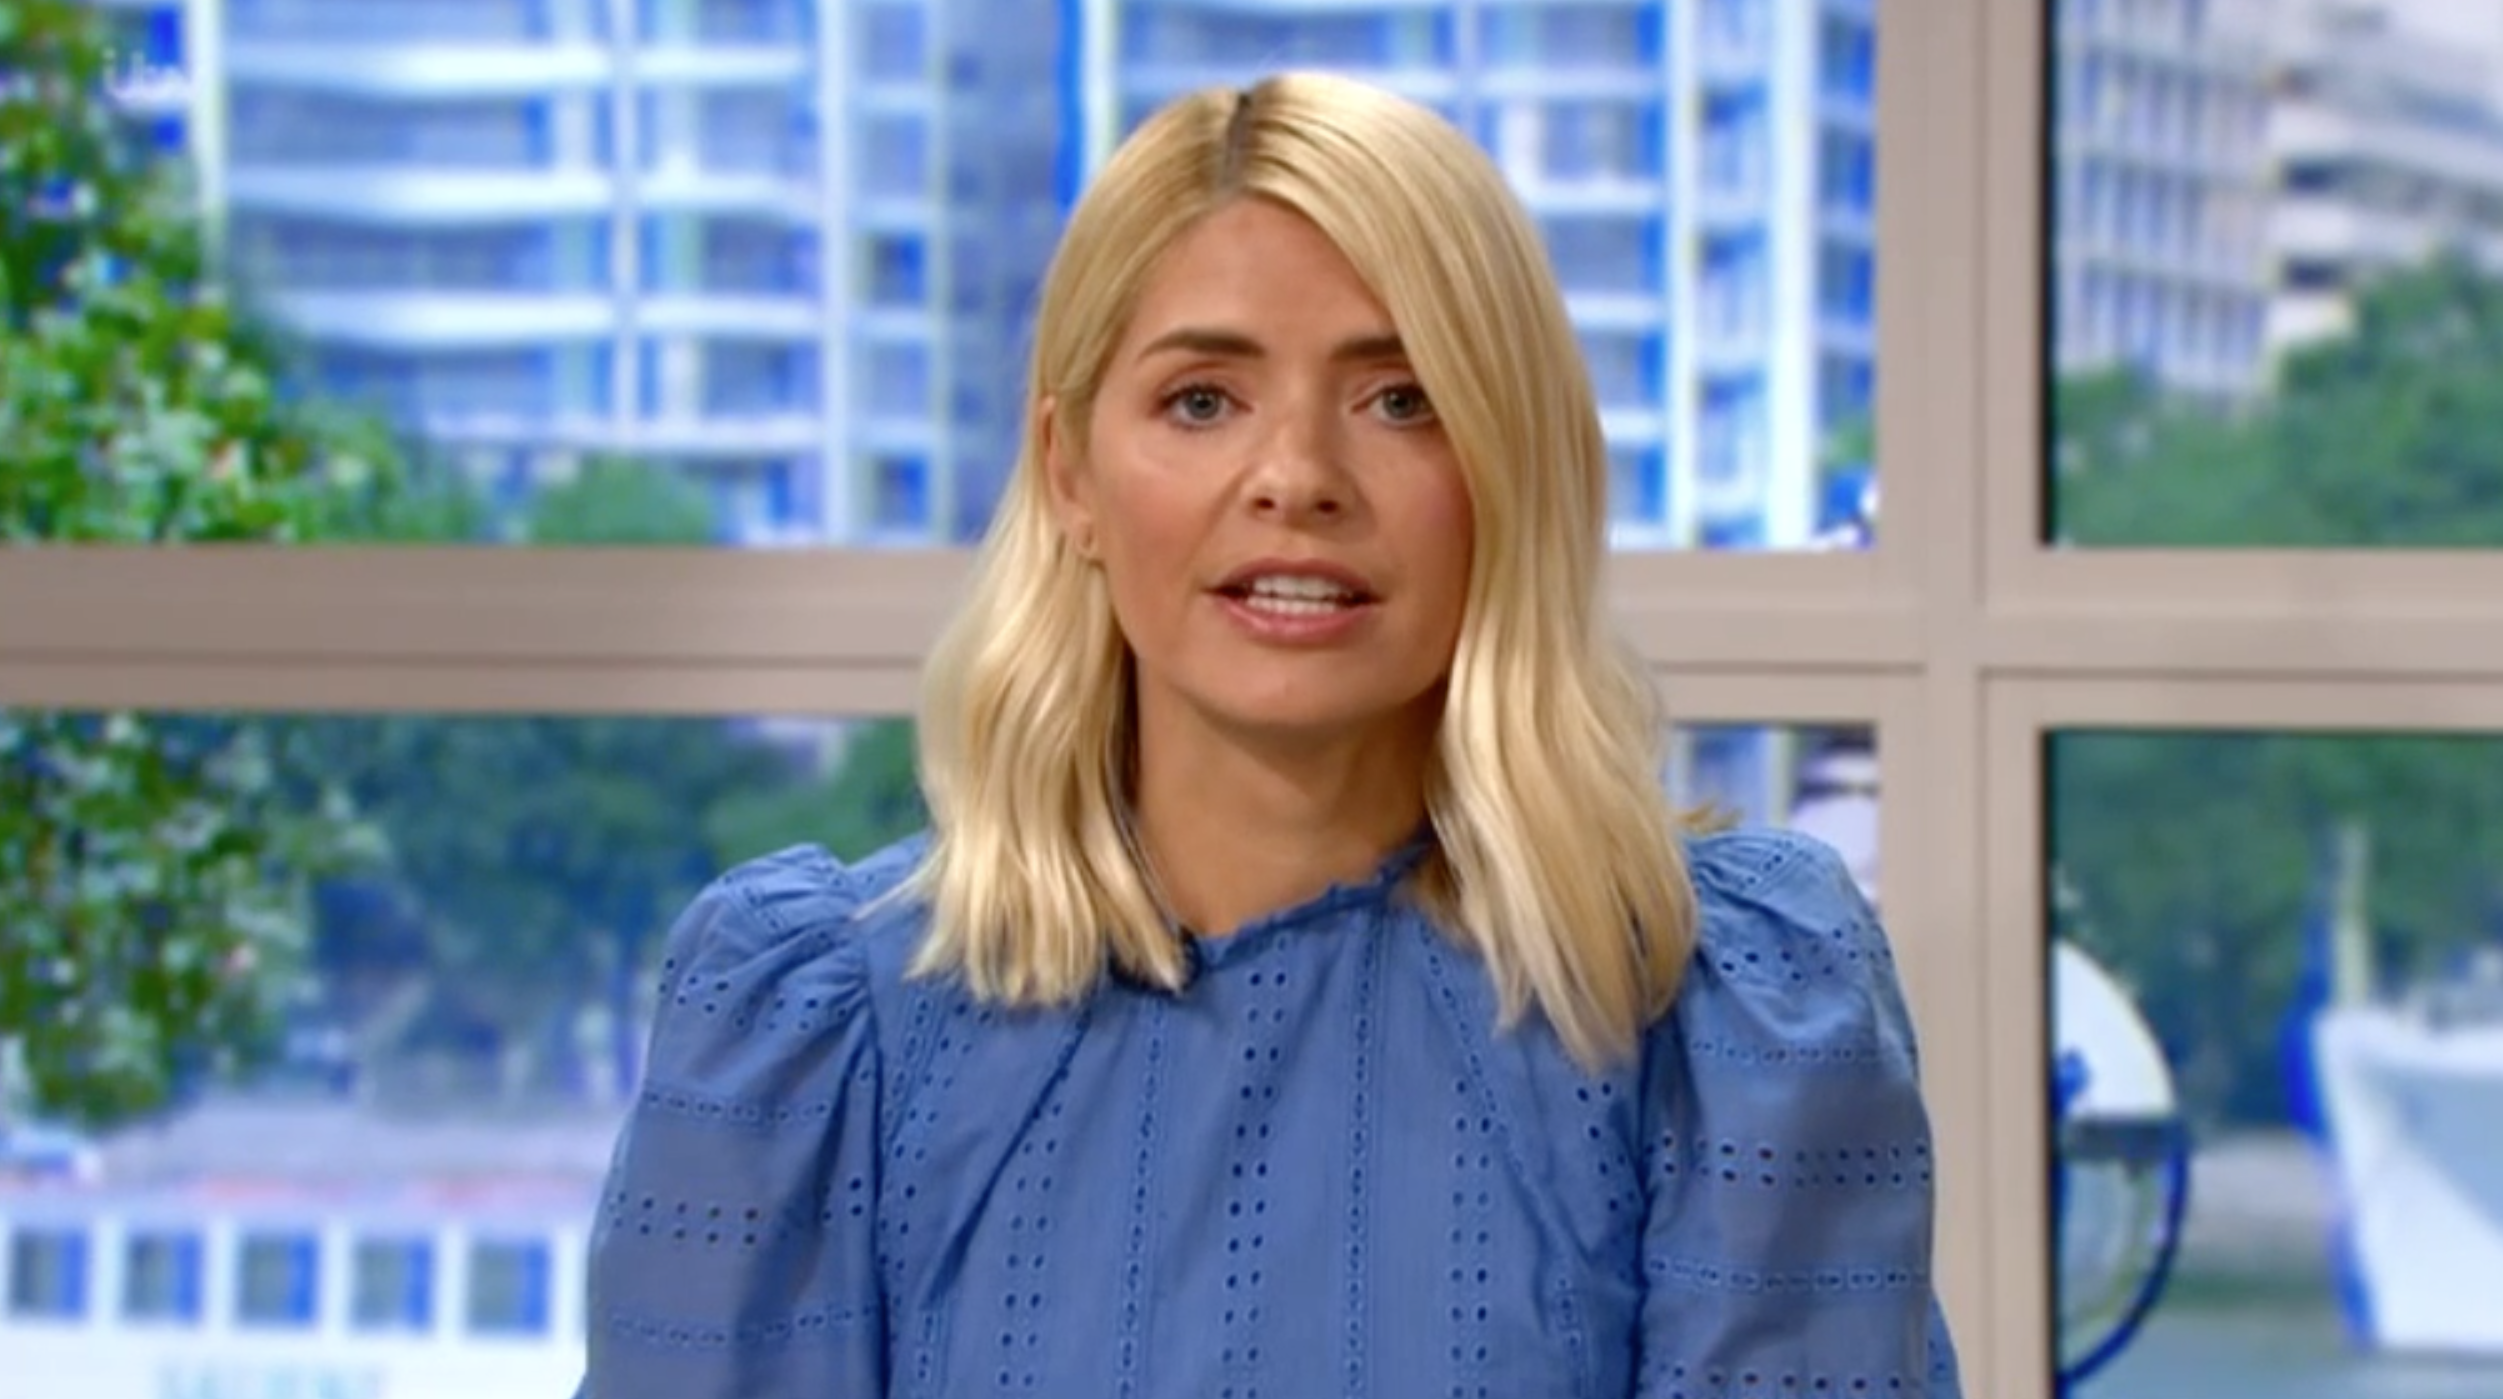 This Morning viewers shocked at the price of Holly Willoughby's dress